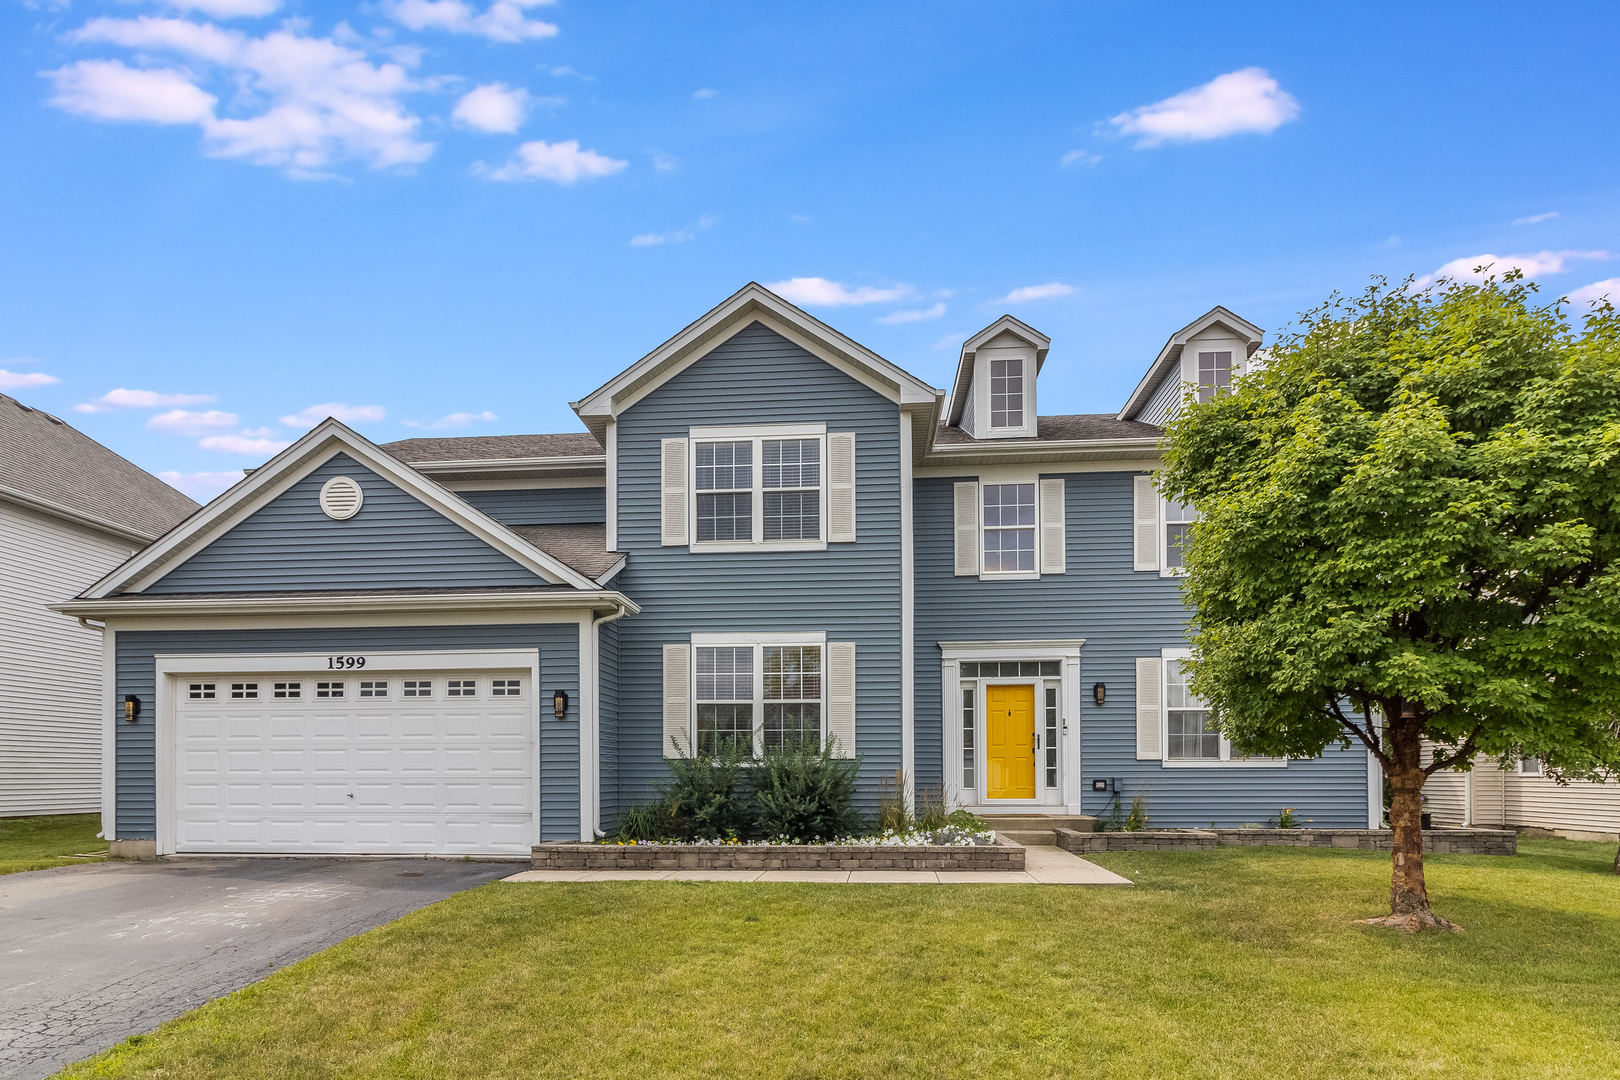 SOUTHGATE PARK'S FINEST! OVER 2,900SF OF PURE BEAUTY ON ARLINGTON STREET. 4 BEDROOM, 2 1/2 BATH 2-STORY HOME WITH MANY UPDATES WHICH INCLUDE NEW CARPETING (2021), REPAINTED INTERIOR AND KITCHEN CABINETS PAINTED (2020), FURNACE (2016) AND HWT (2018). FIRST FLOOR INCLUDES HARDWOOD FLOORING THRU-OUT AND CONSISTS OF FORMAL LIVING/DINING ROOM. 18X15 FAMILY ROOM OVERLOOKS THE YARD WITH SOUTHERN VIEWS AND LOTS OF SUNLIGHT. ADD A 1ST FLOOR OFFICE WITH FRENCH DOORS/WAINSCOTING AND CROWN MOLDING. ALL BEDROOMS PLUS BONUS ROOM ARE ON THE 2ND FLOOR INCLUDING ENORMOUS MASTER BEDROOM COMPLETE WITH SEPARATE SITTING ROOM & PRIVATE MASTER W/DUAL VANITY & SEPARATE SOAKING TUB/SHOWER. TOO MUCH TO LIST AND INCLUDE 202 SCHOOLS!